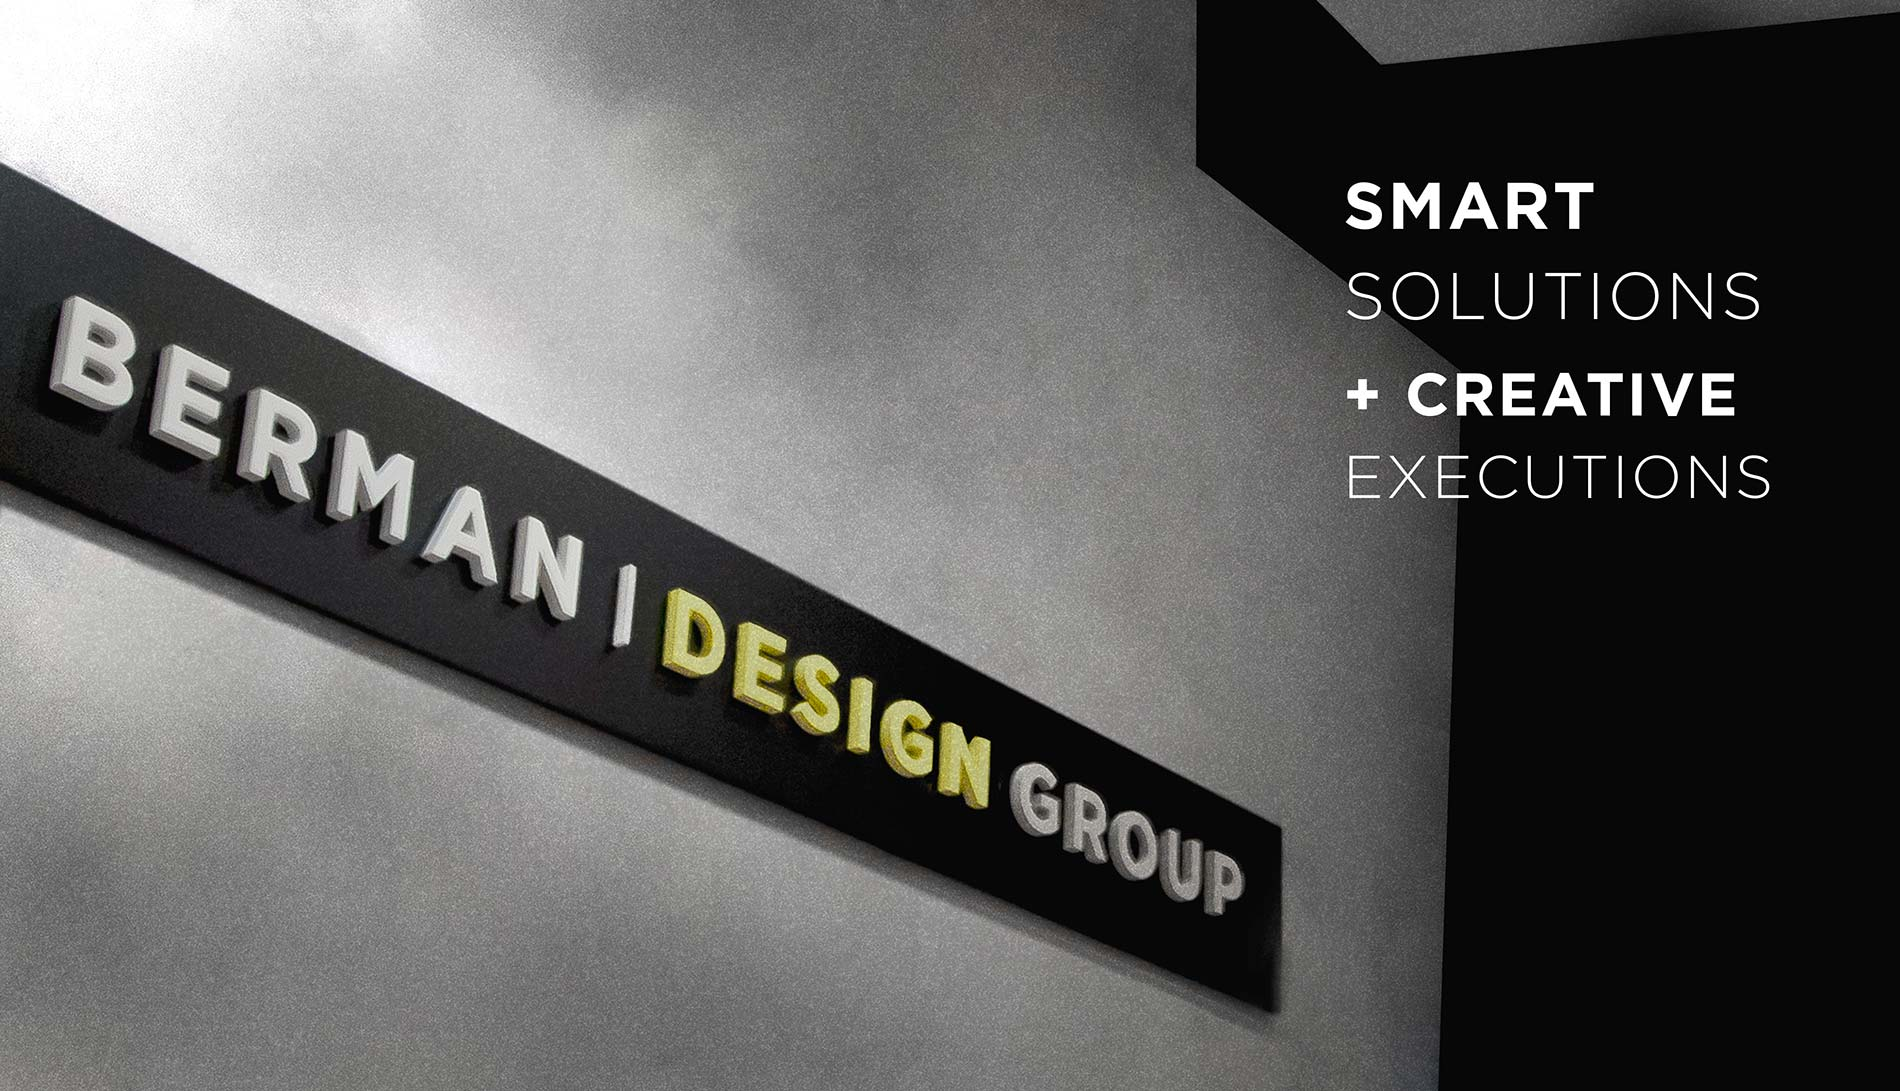 Berman Design Group - Smart Solutions & Creative Executions